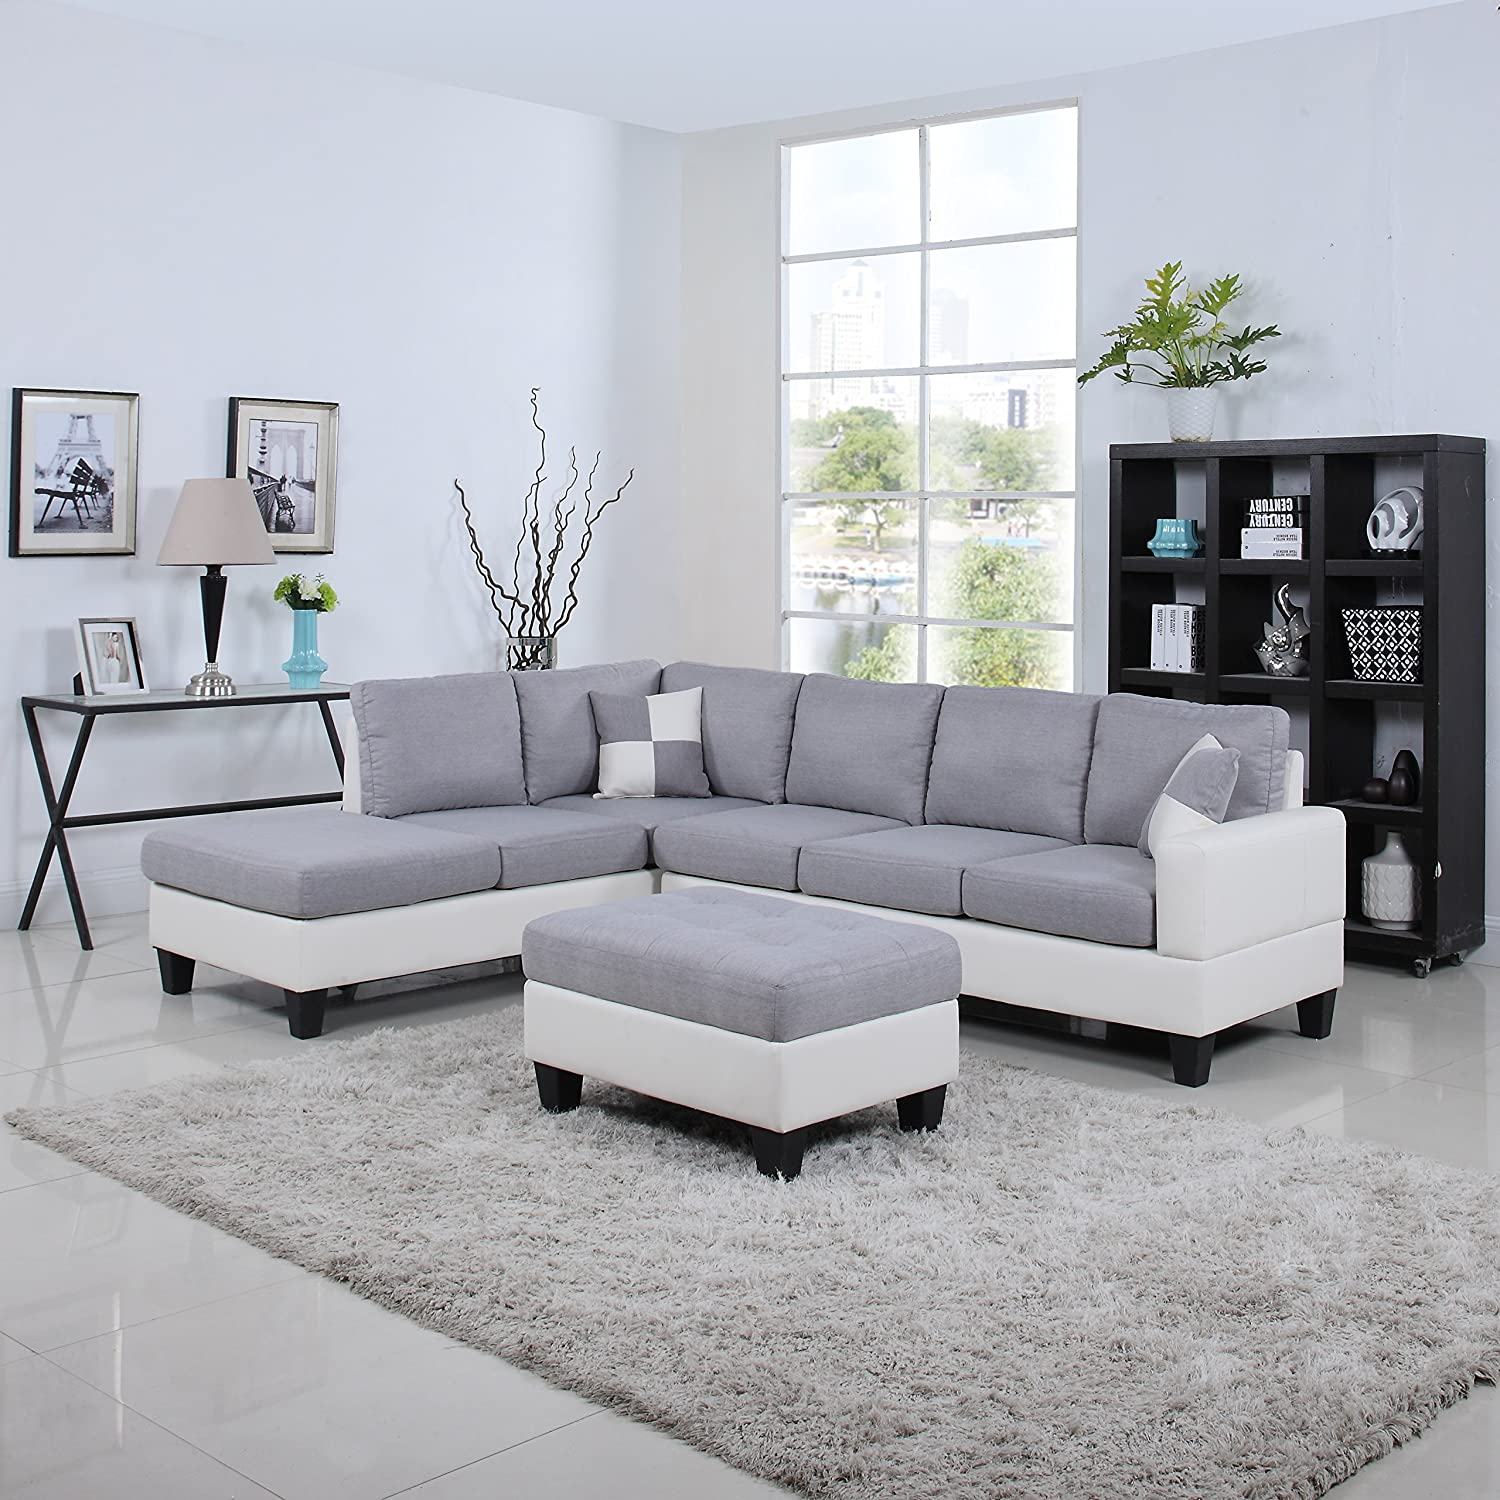 Amazon.com: Classic Two Tone Large Linen Fabric And Bonded Leather Living  Room Sectional Sofa (White / Light Grey): Kitchen U0026 Dining